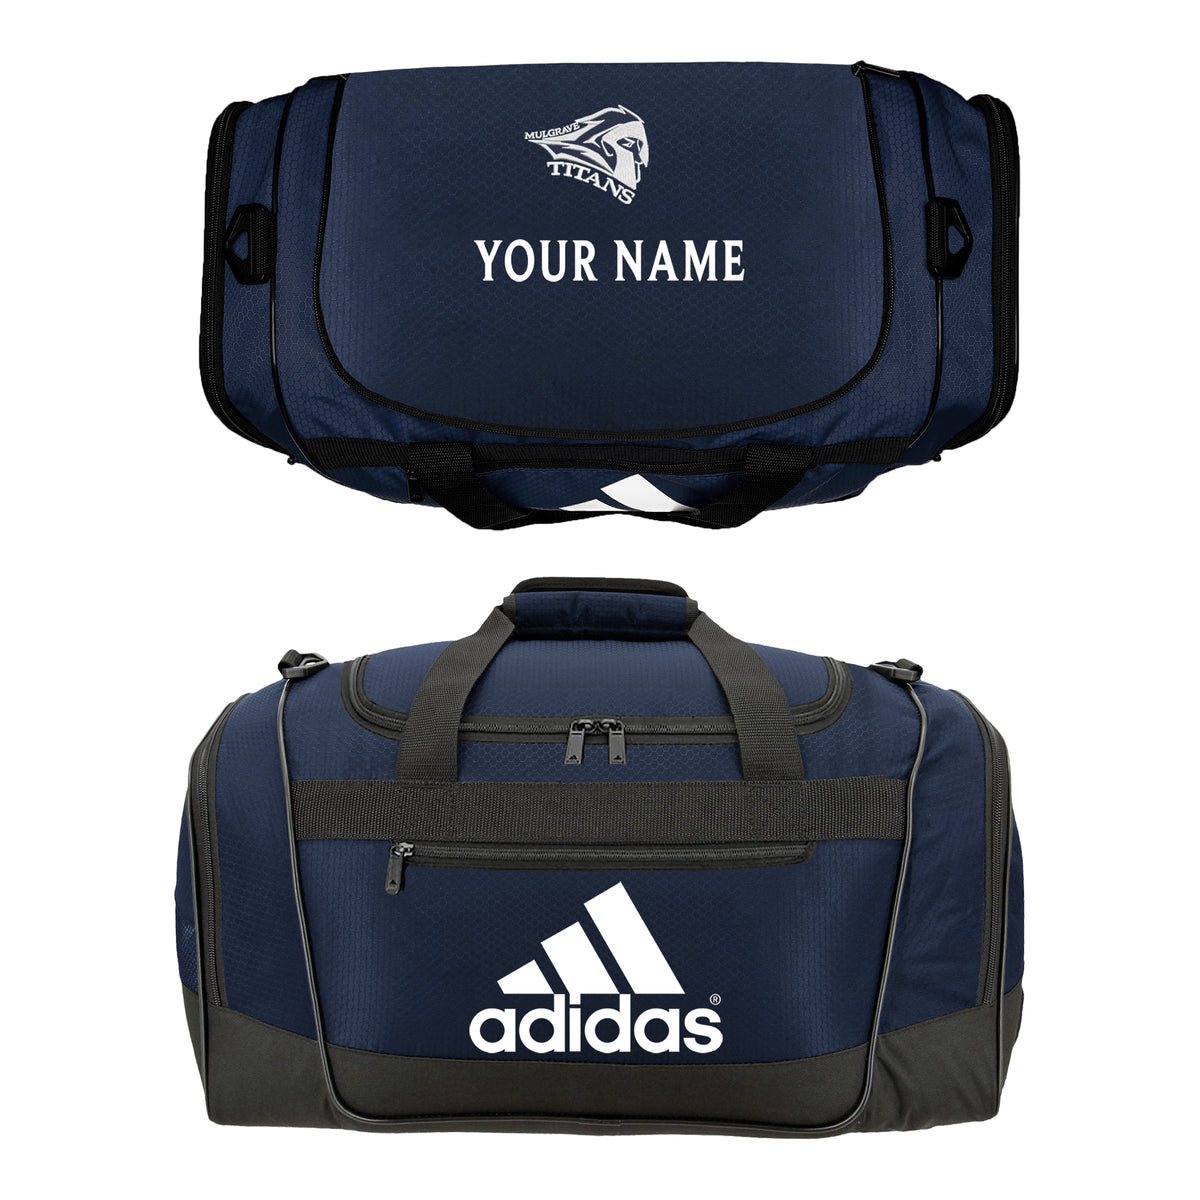 MULGRAVE ADIDAS DUFFLE GYM BAG